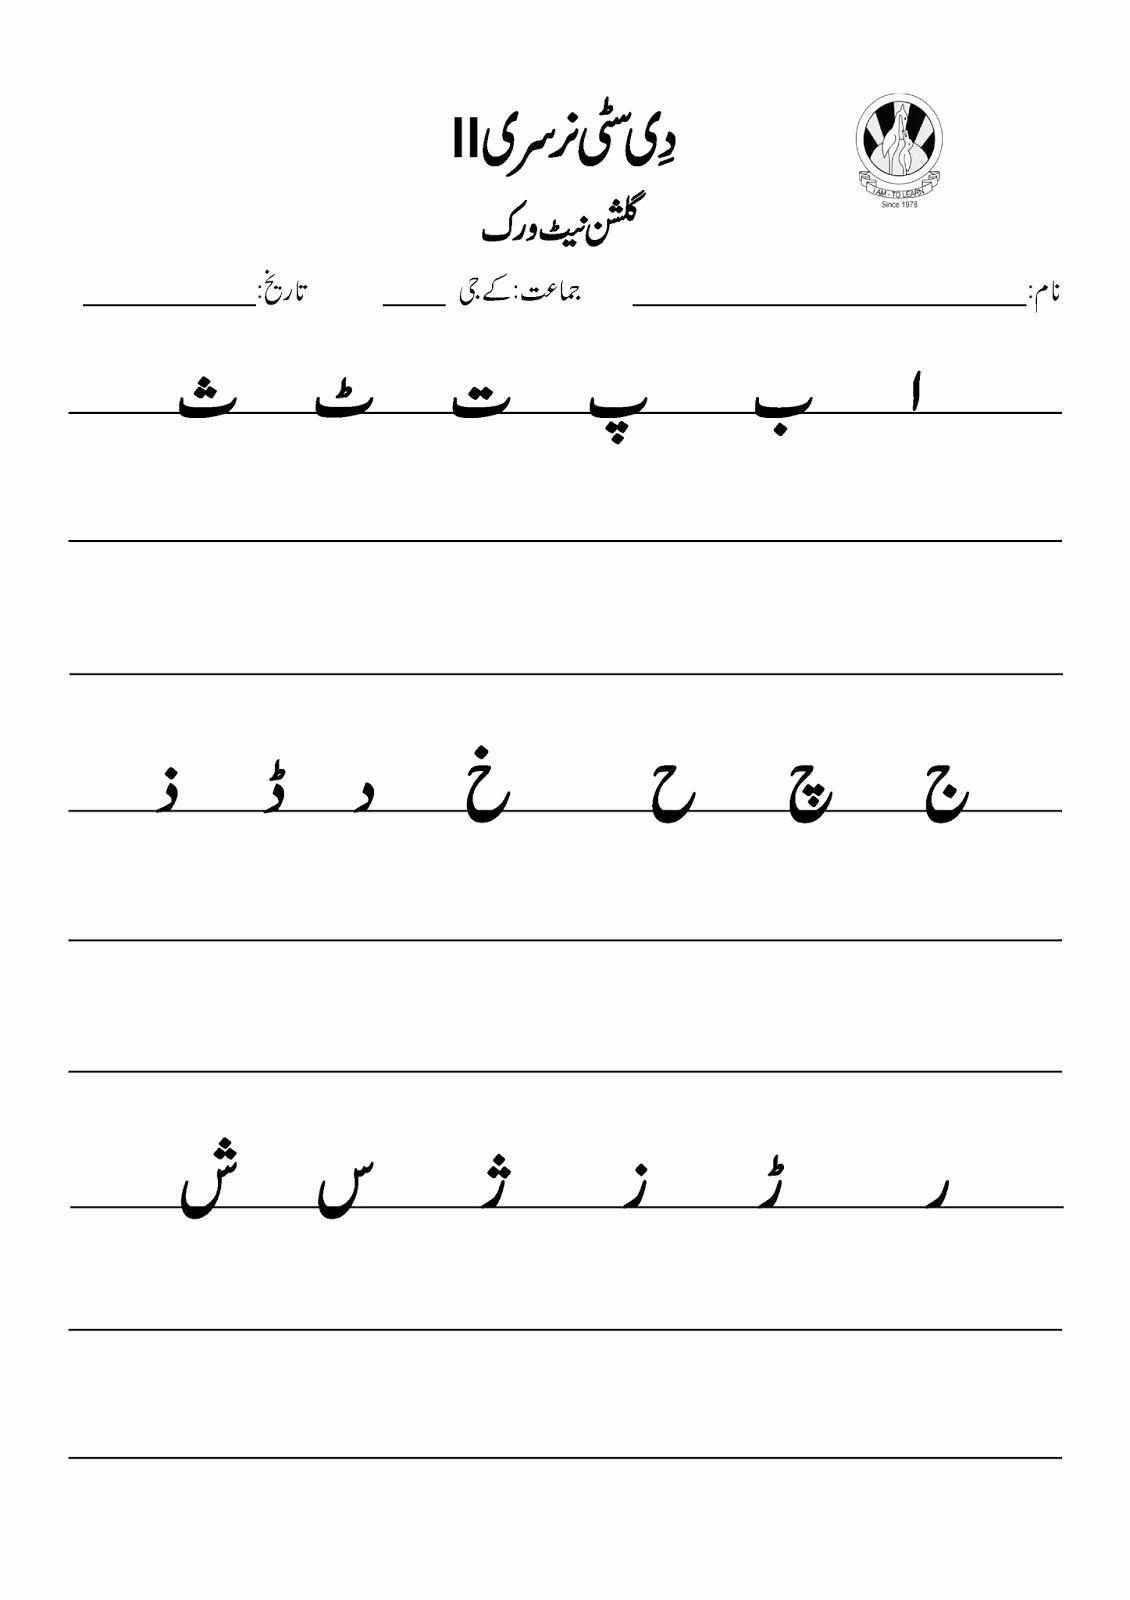 Urdu Alphabets Tracing Worksheets For Kids Ideas Urdu